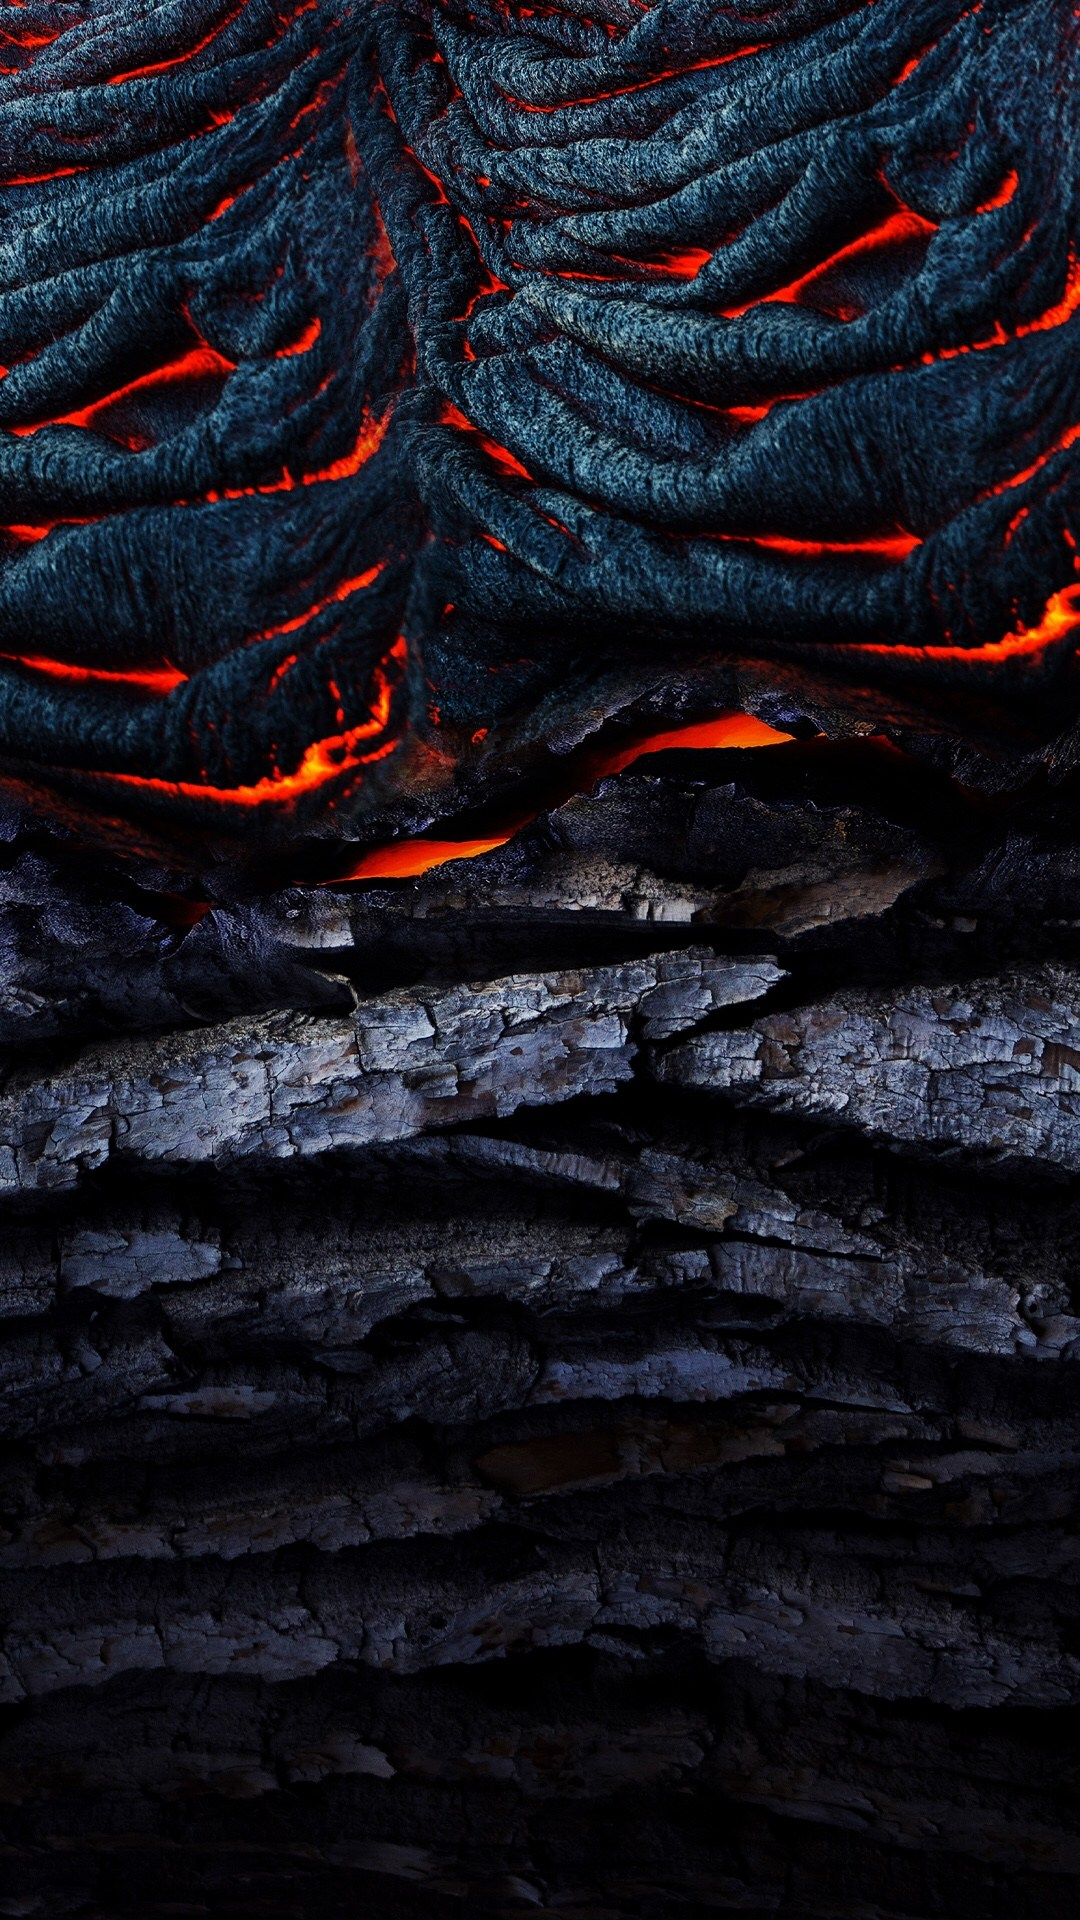 Fiery Stone and Wood Fire Phone Wallpaper Wallpapers For Tech 1080x1920